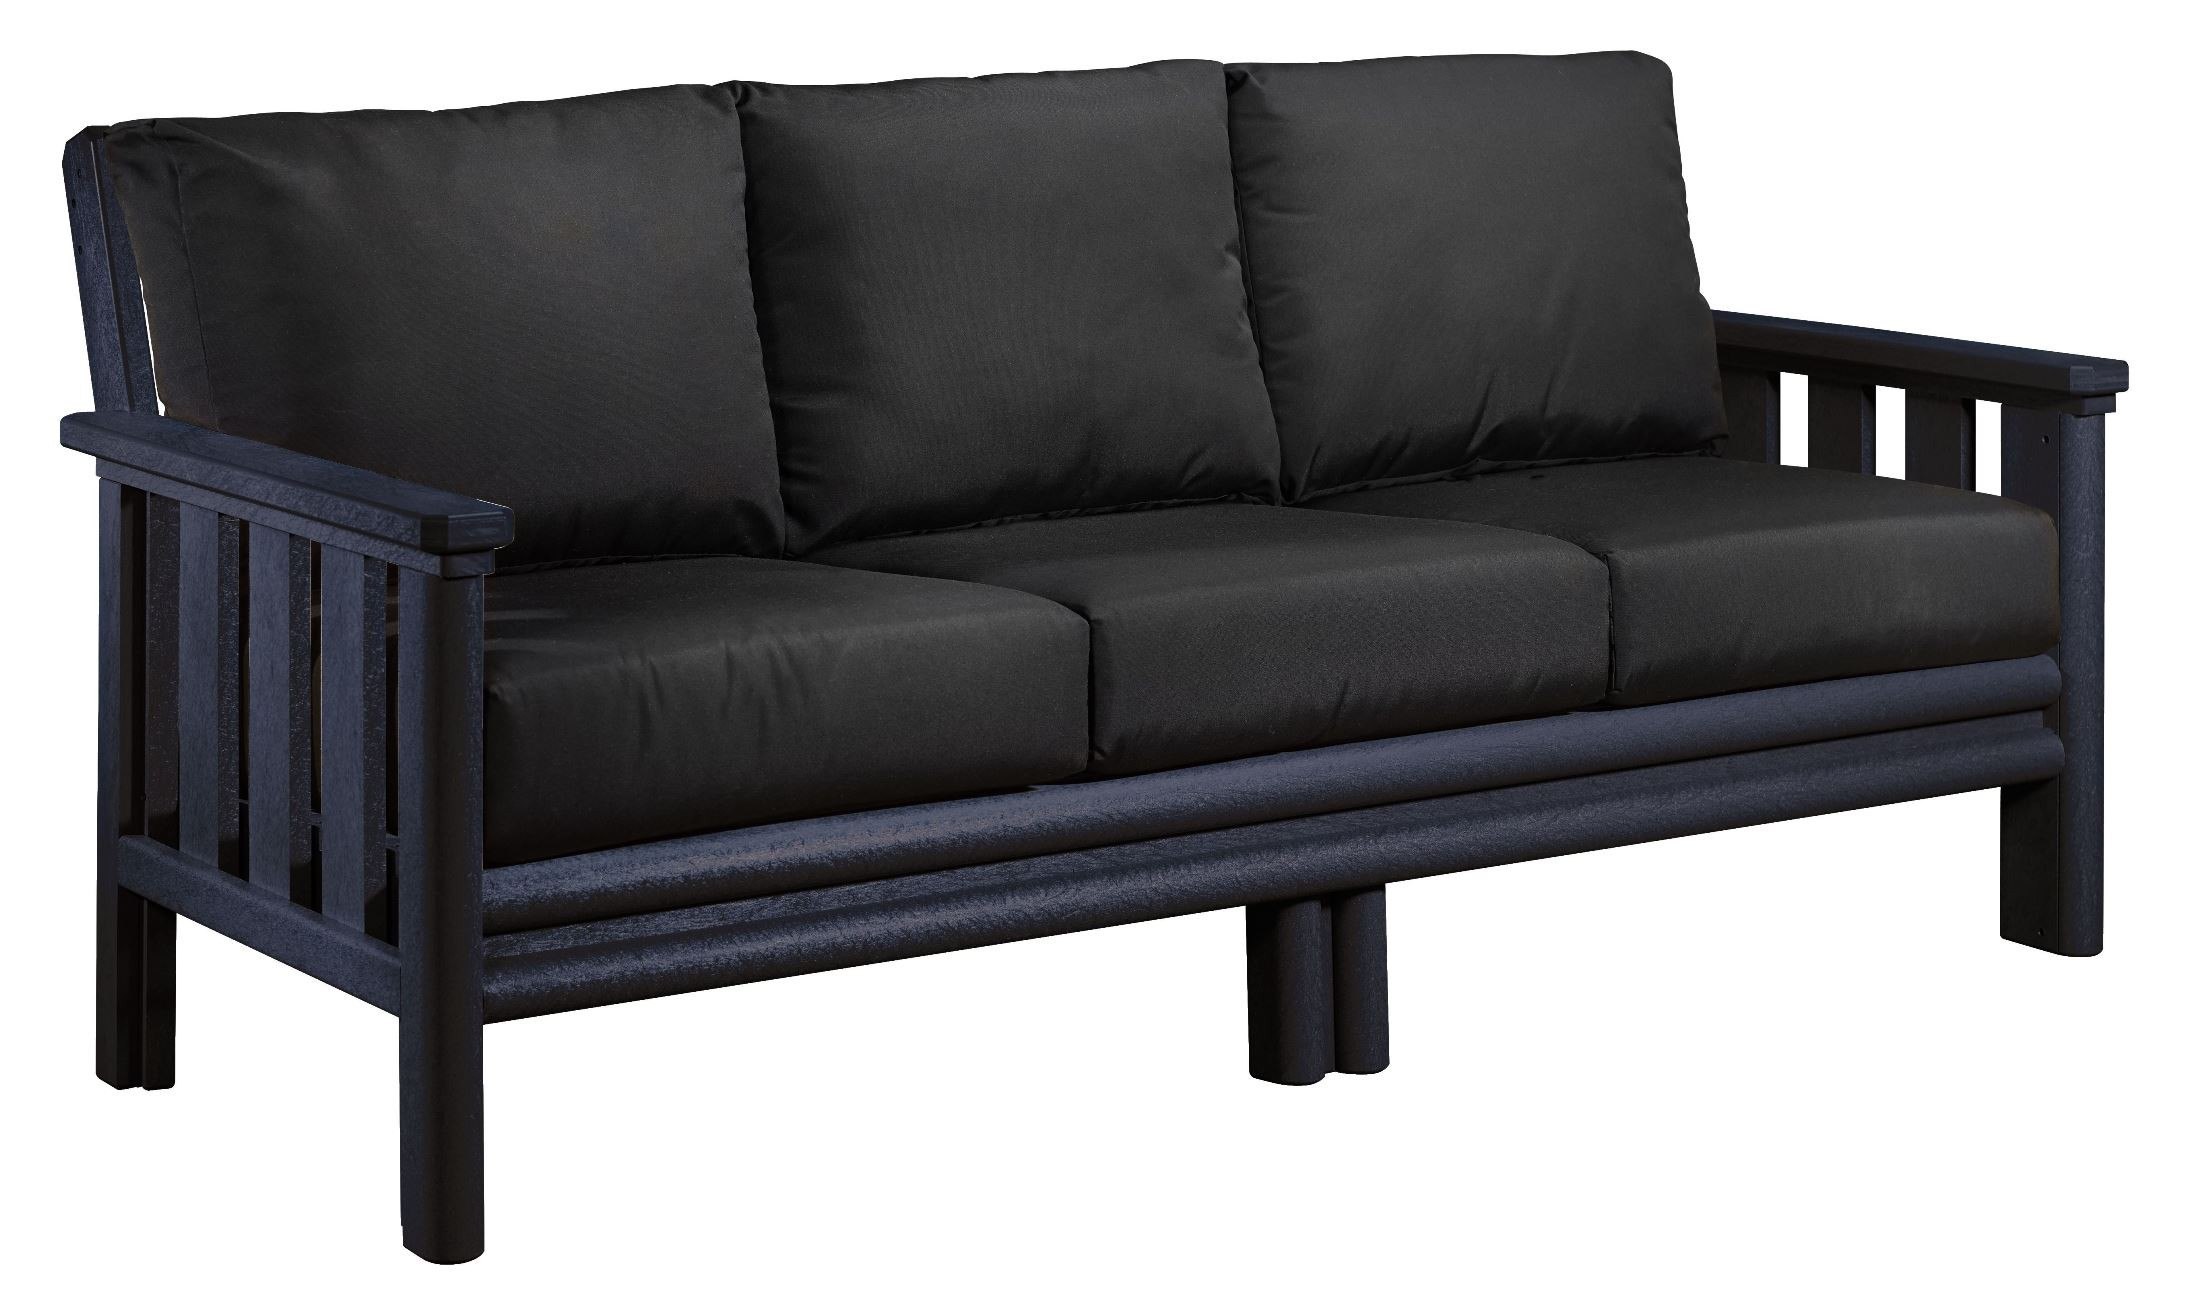 sunbrella sofa cushions turner sofas molteni c stratford black with from cr